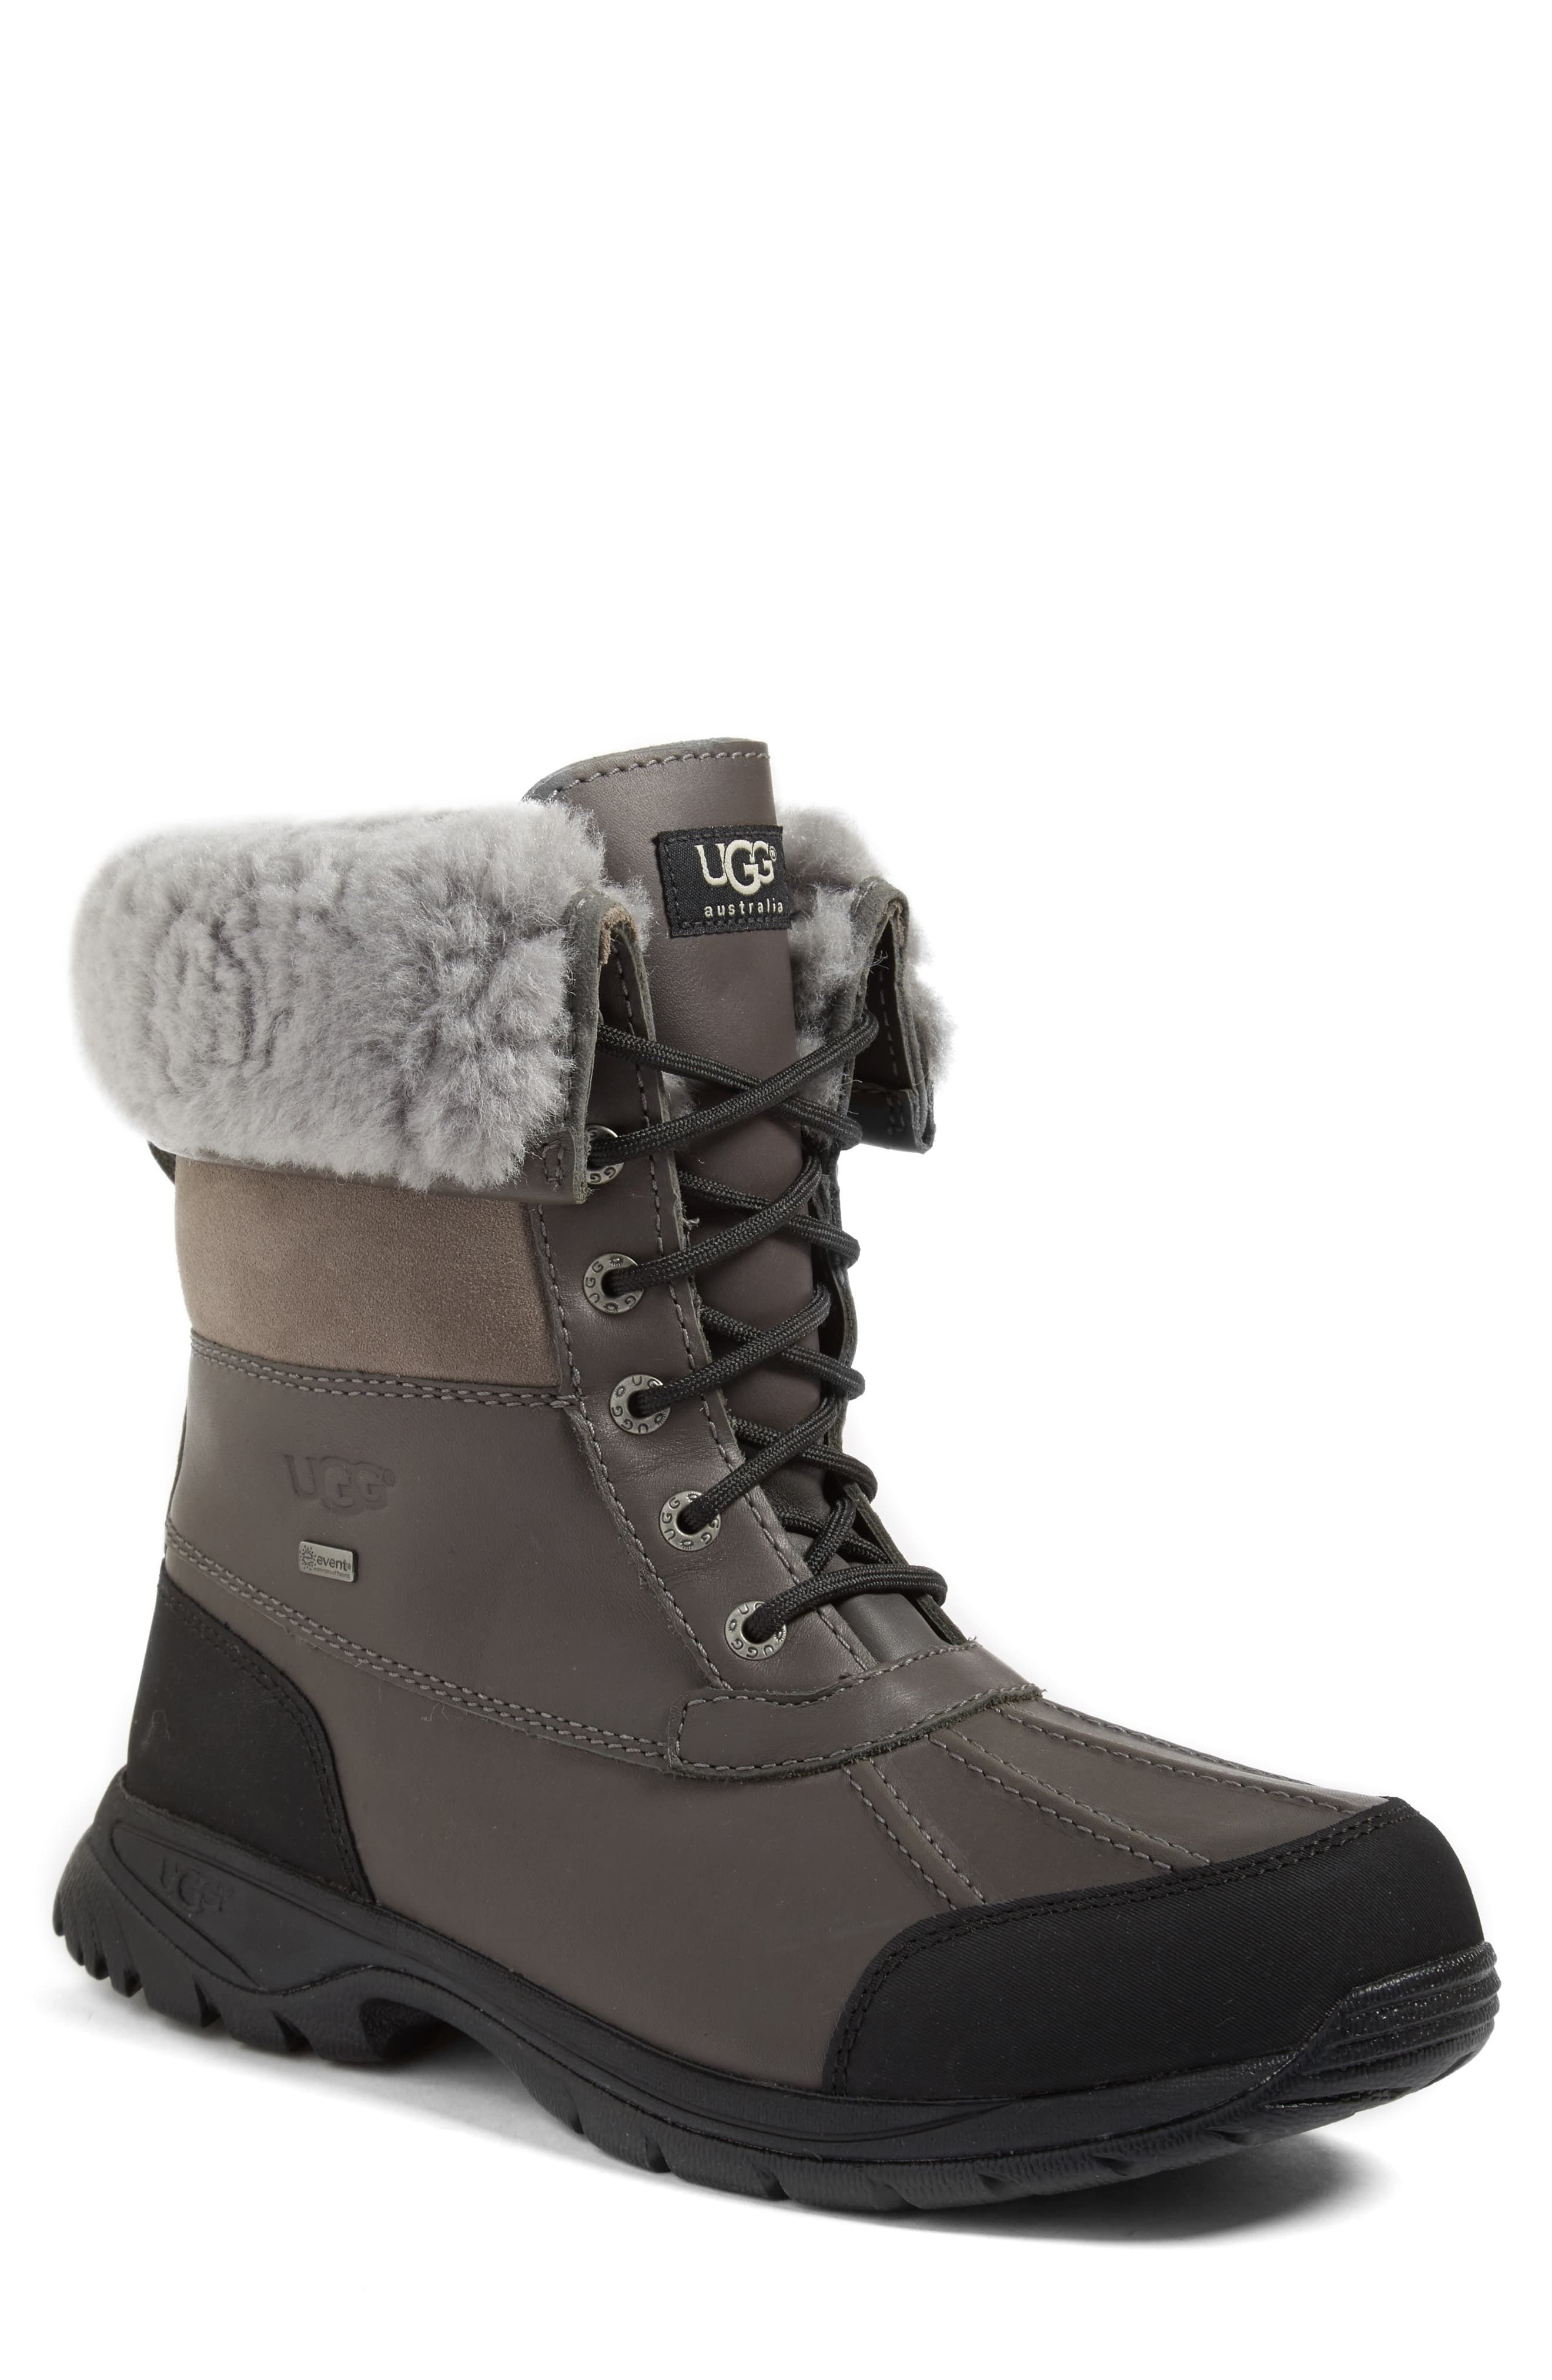 cbc0596cd31 Men's Ugg Butte Waterproof Boot, Size 7 M - Black in 2019 | Products ...